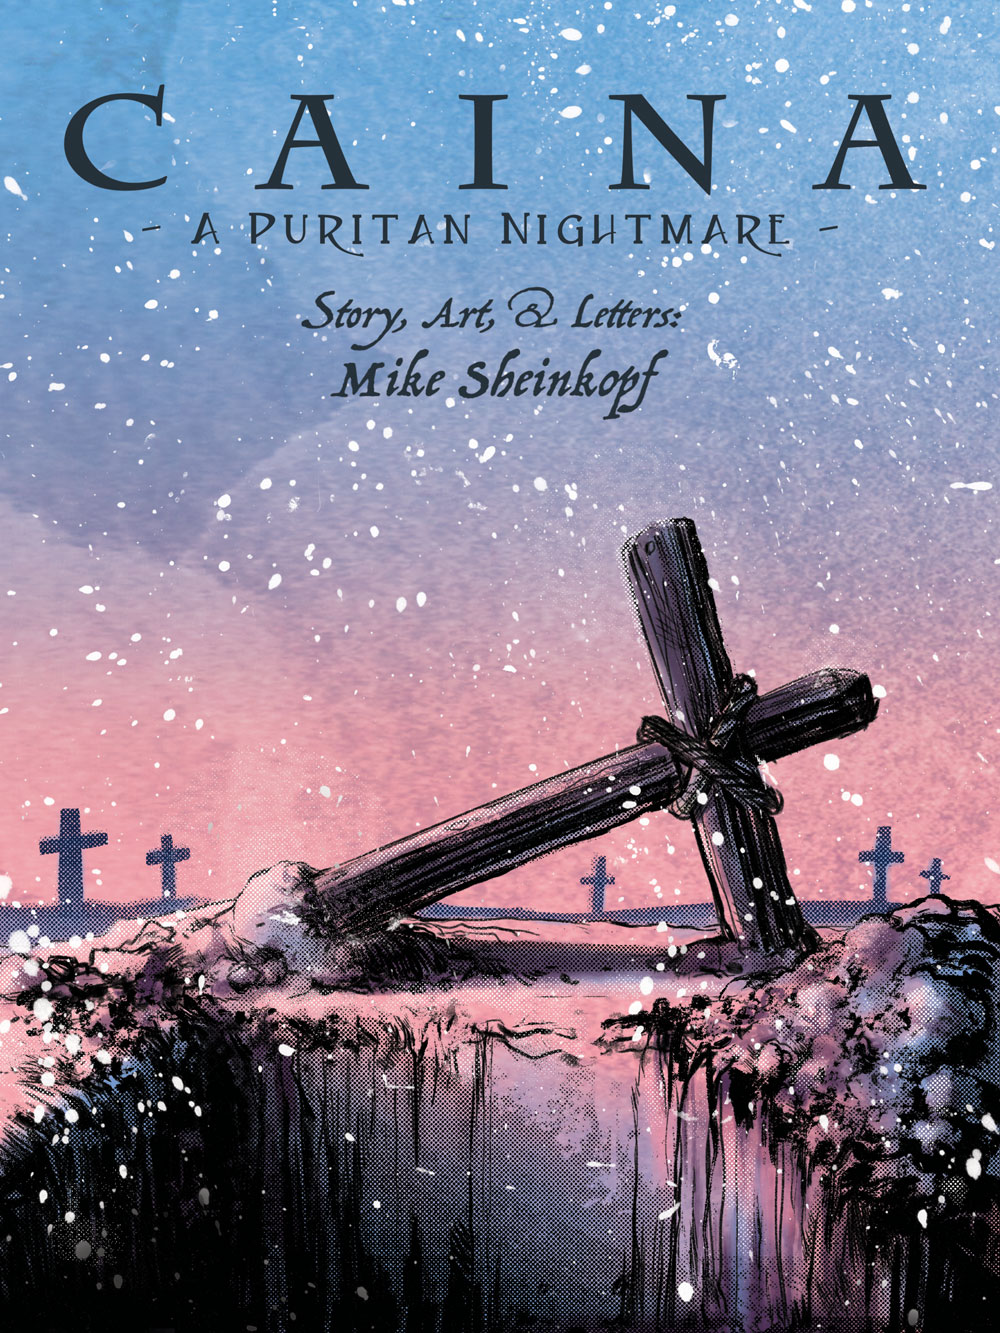 """Cover for """"Caina: A Puritan Nightmare"""" illustration using a blue and pink palette with dark inks, showing an open grave with a fallen cross grave marker in a field of crosses."""